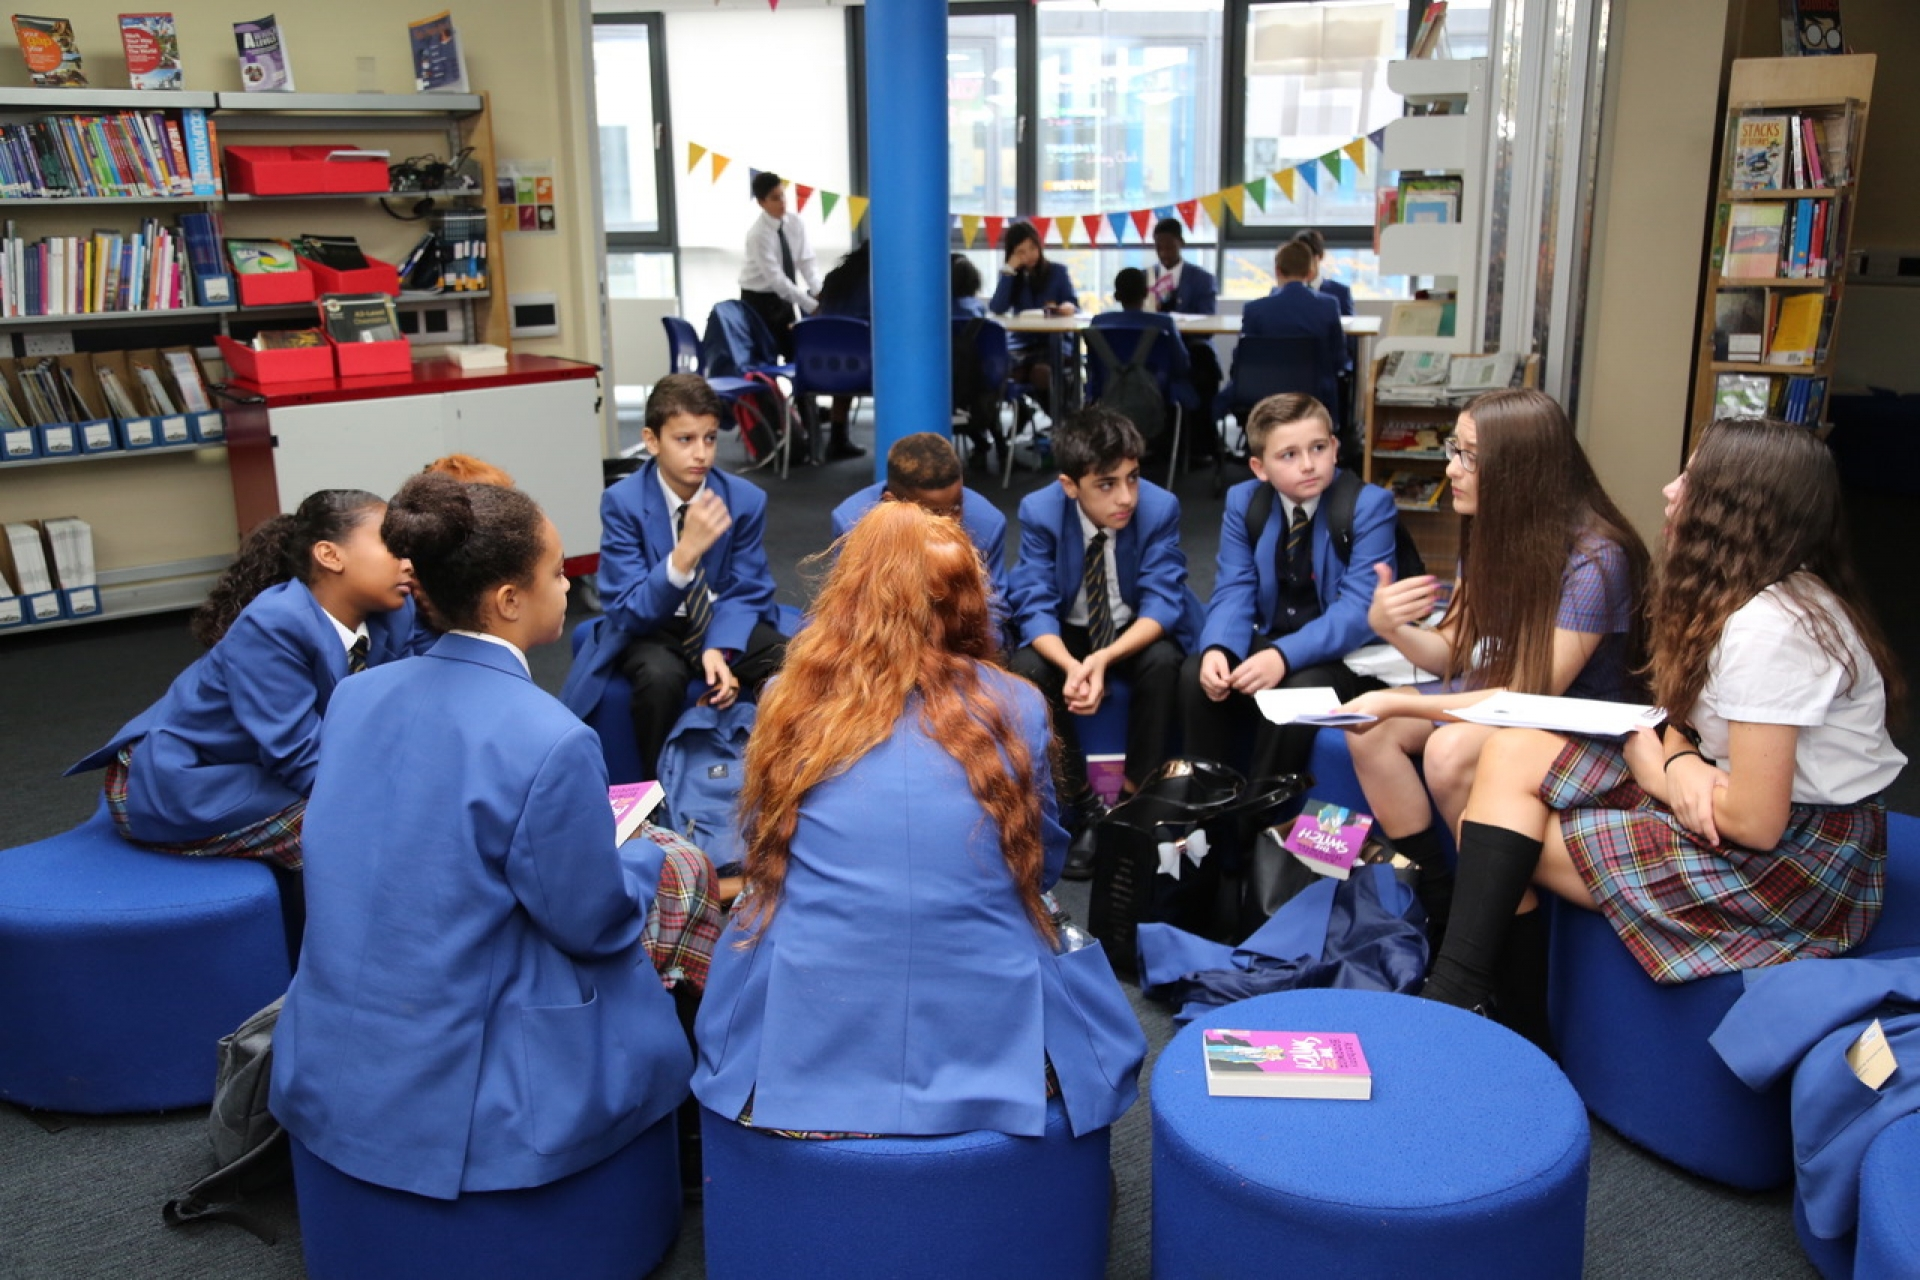 LoveReading Book Club Feature #8: School Book Clubs